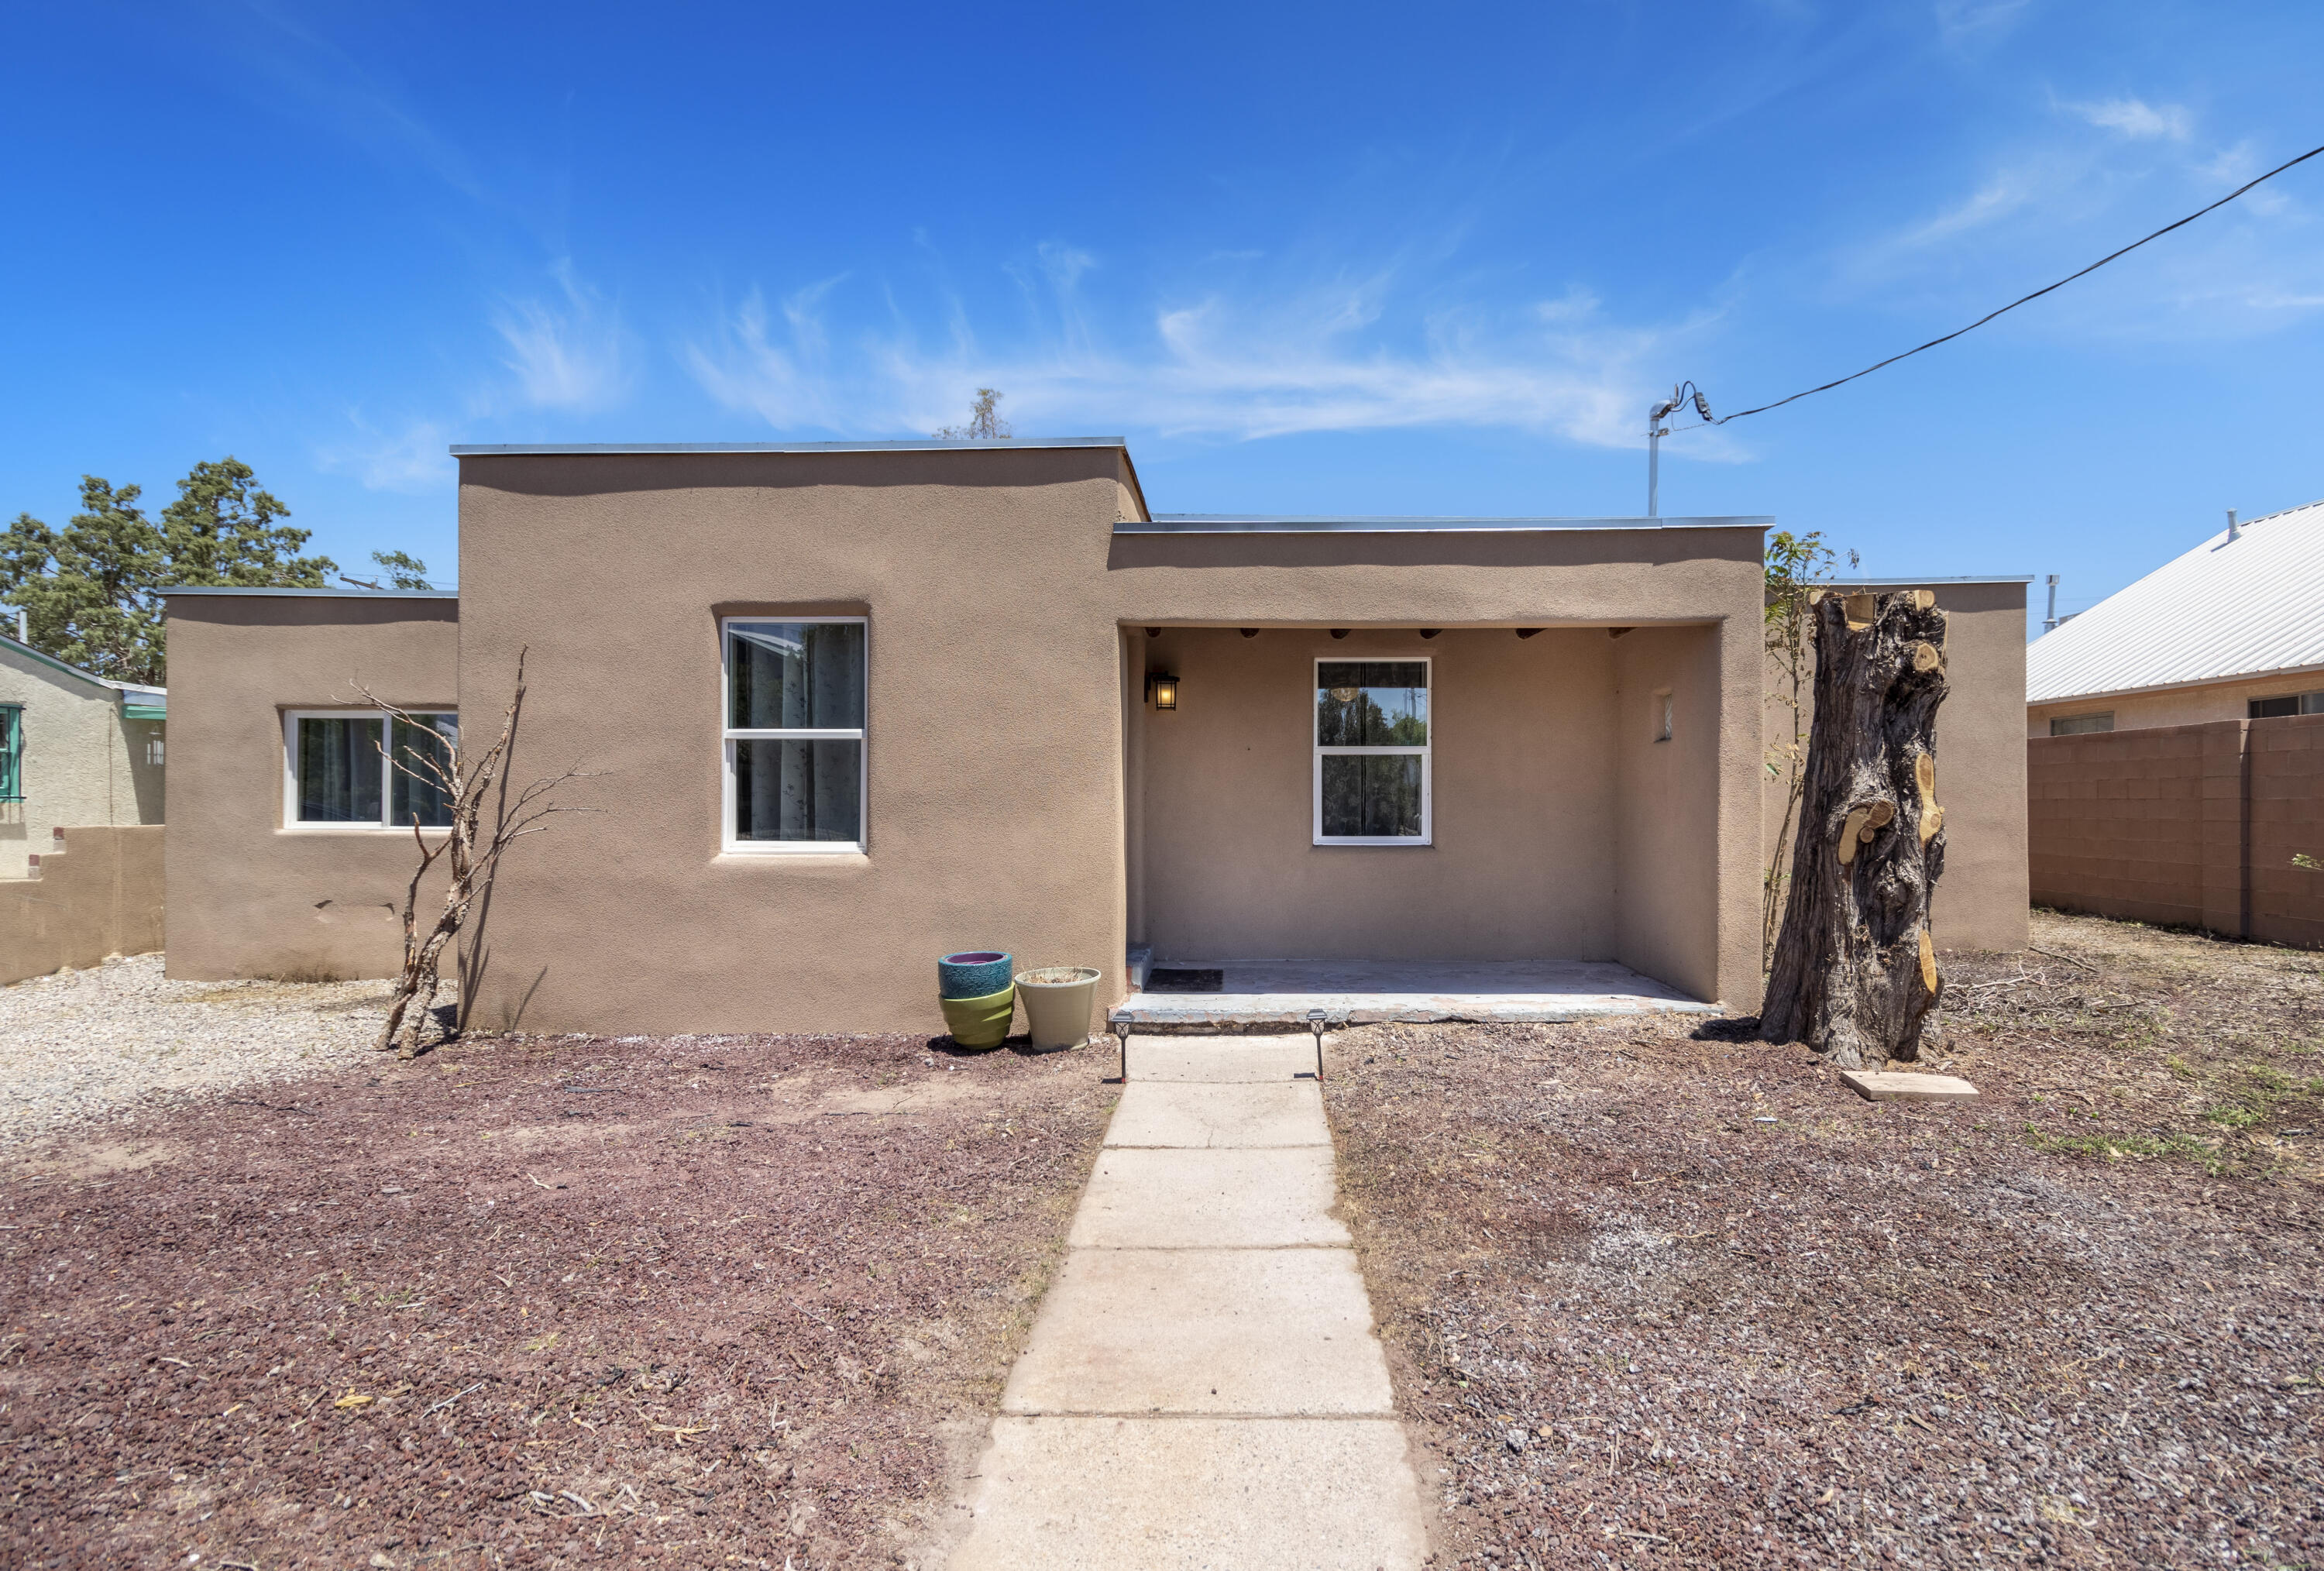 An absolutely darling 2bdrm home situated in a great North Valley location. This home offers two living areas and an updated kitchen with granite countertops, gorgeous backsplash and stainless steel appliances to include a built in microwave and side by side refrigerator. Updated bath.  Some beautiful hardwood flooring, tile and carpet, and  thermal windows. An amazingly spacious backyard with storage shed.  Easy access to both I-40 and I-25, Shopping, Restaurants and entertainment.  Great home! This one won't last long.